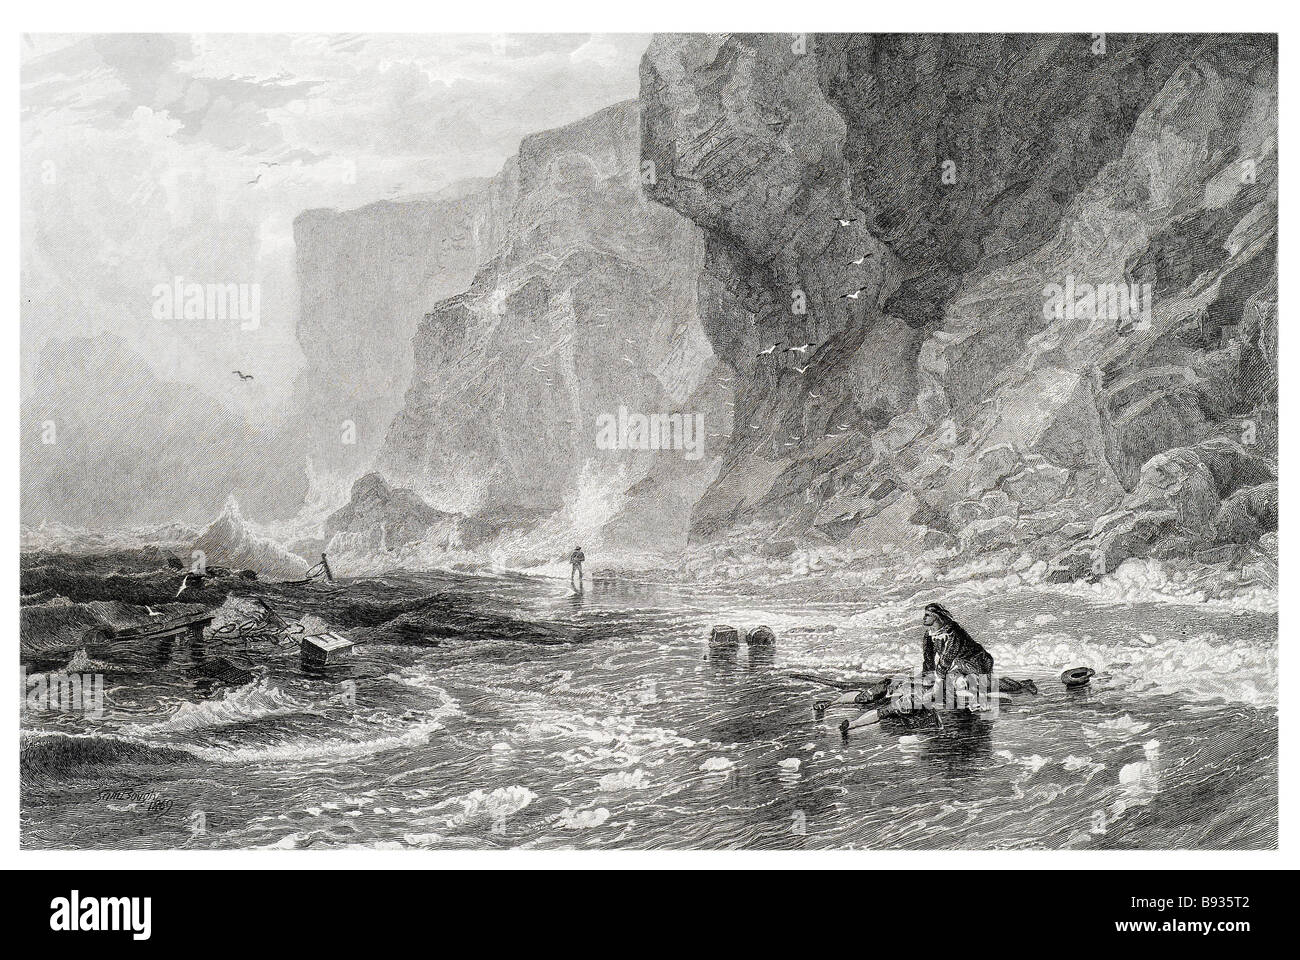 the storm with mordaunt rescuing cleveland sea shore beach drowned ship wreak cliffs cliff period dress waves water - Stock Image